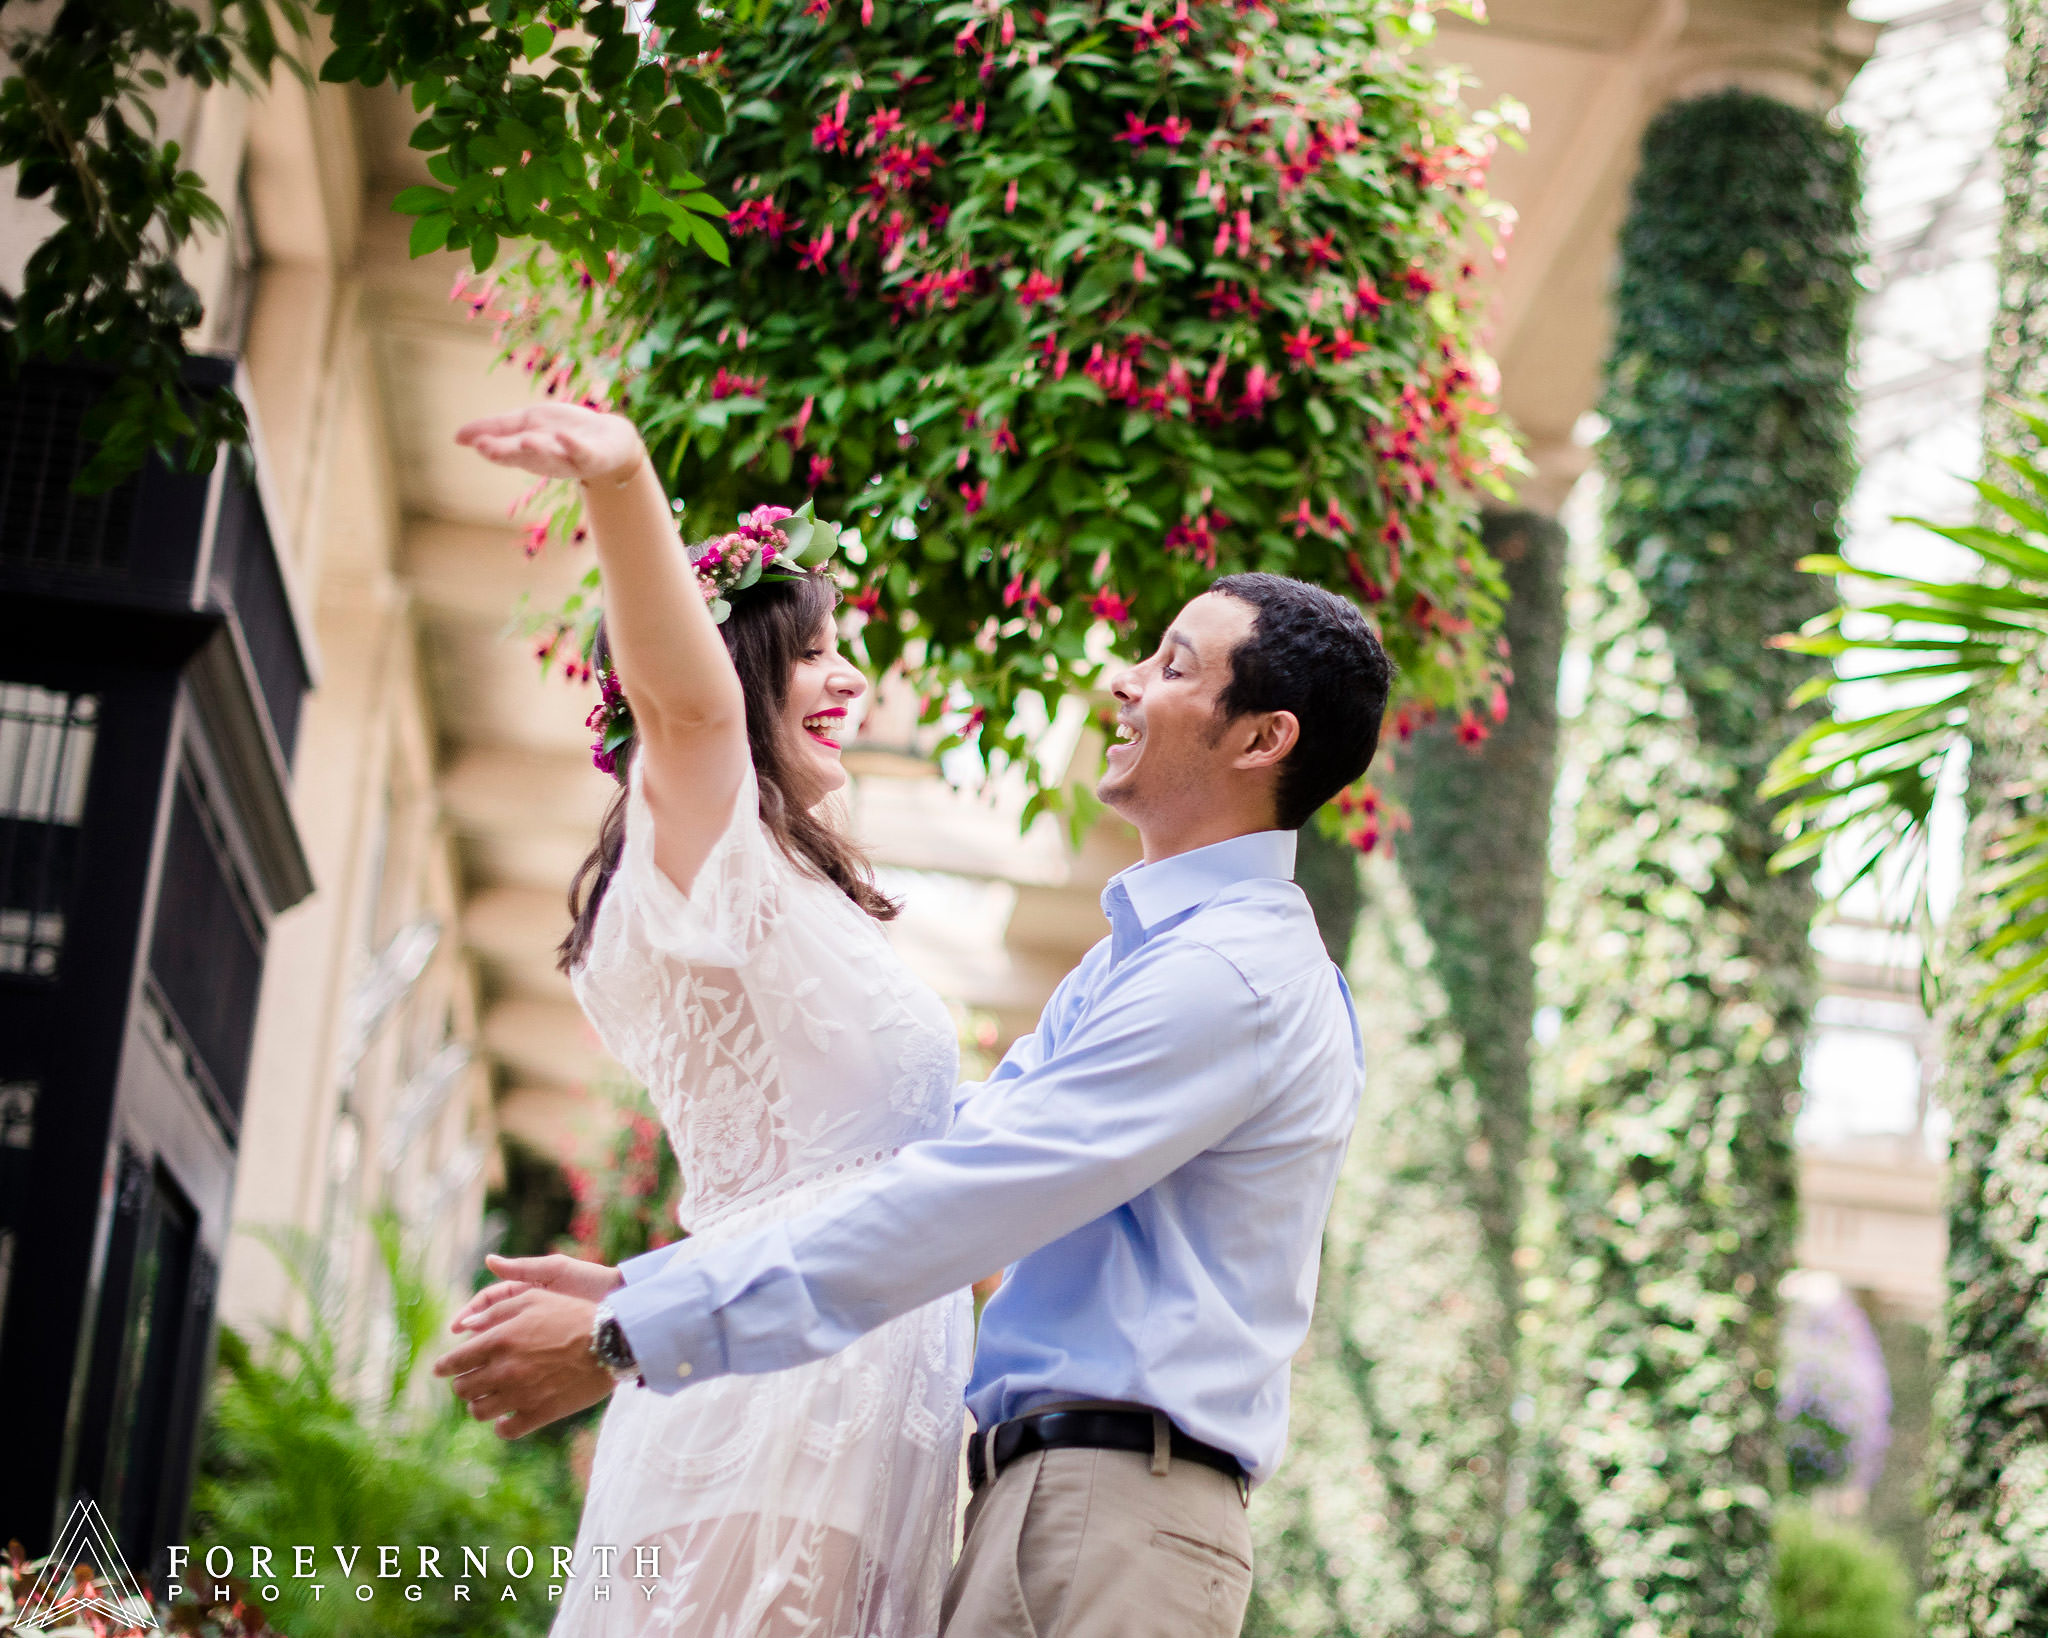 Longwood-Gardens-Engagement-Photos-11.JPG